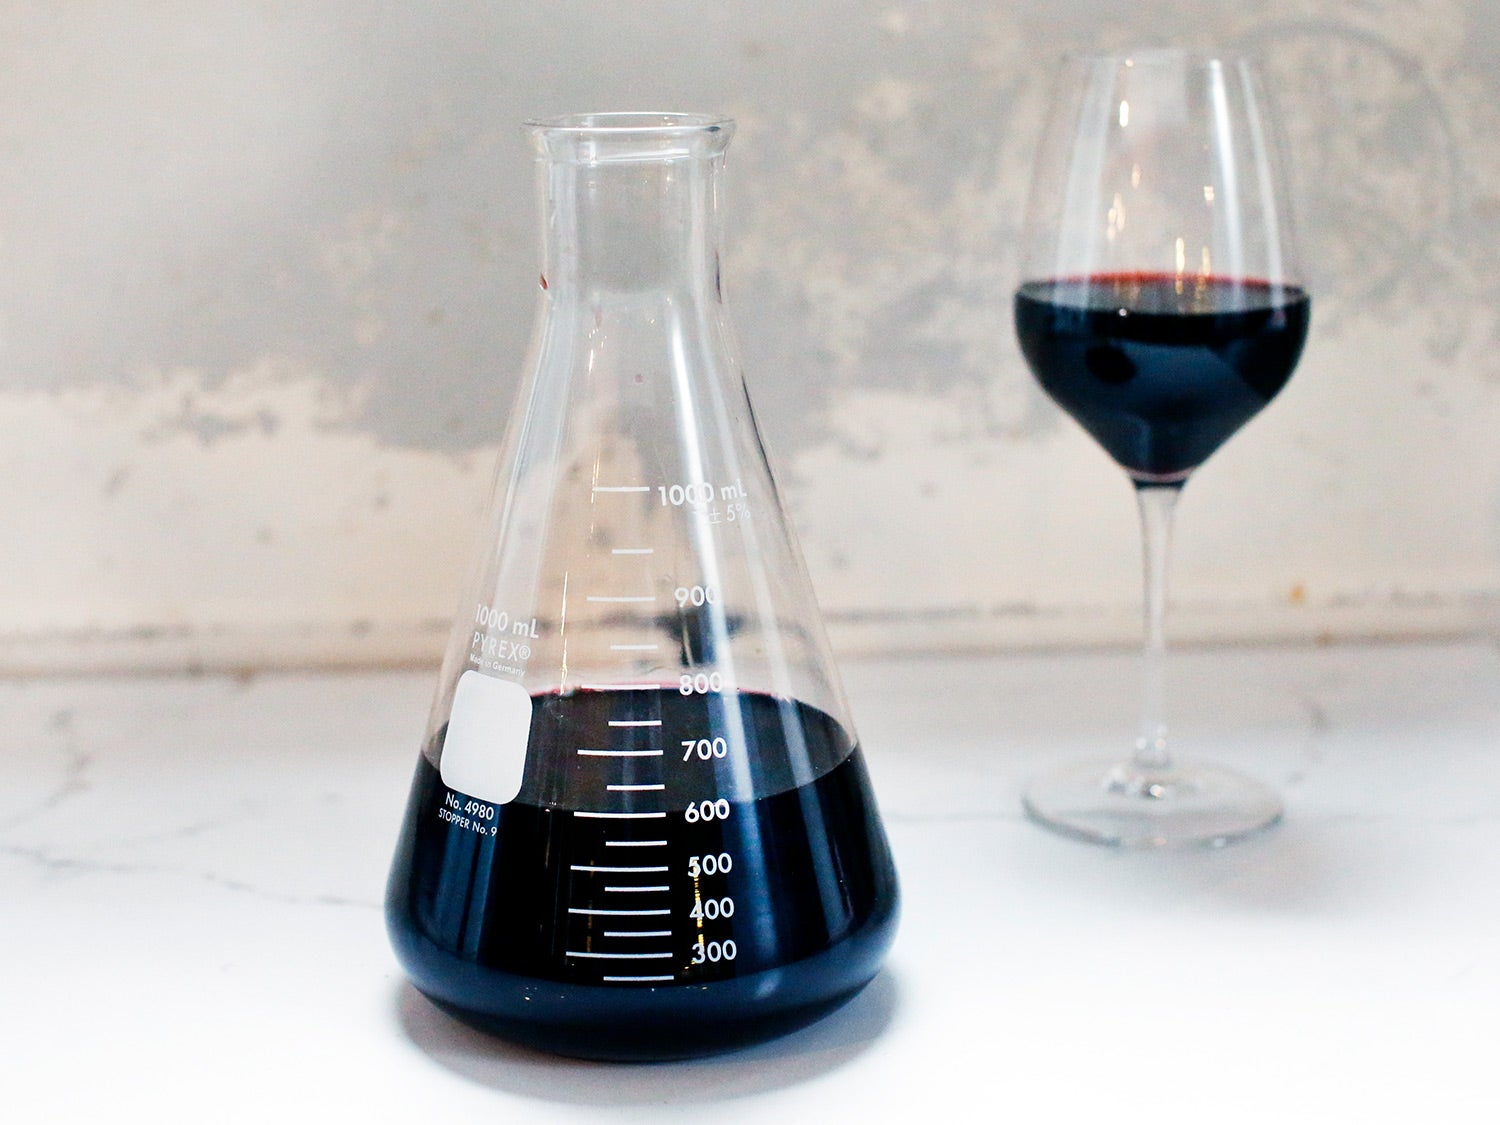 The Best Wine Decanter Is a Piece of Lab Equipment